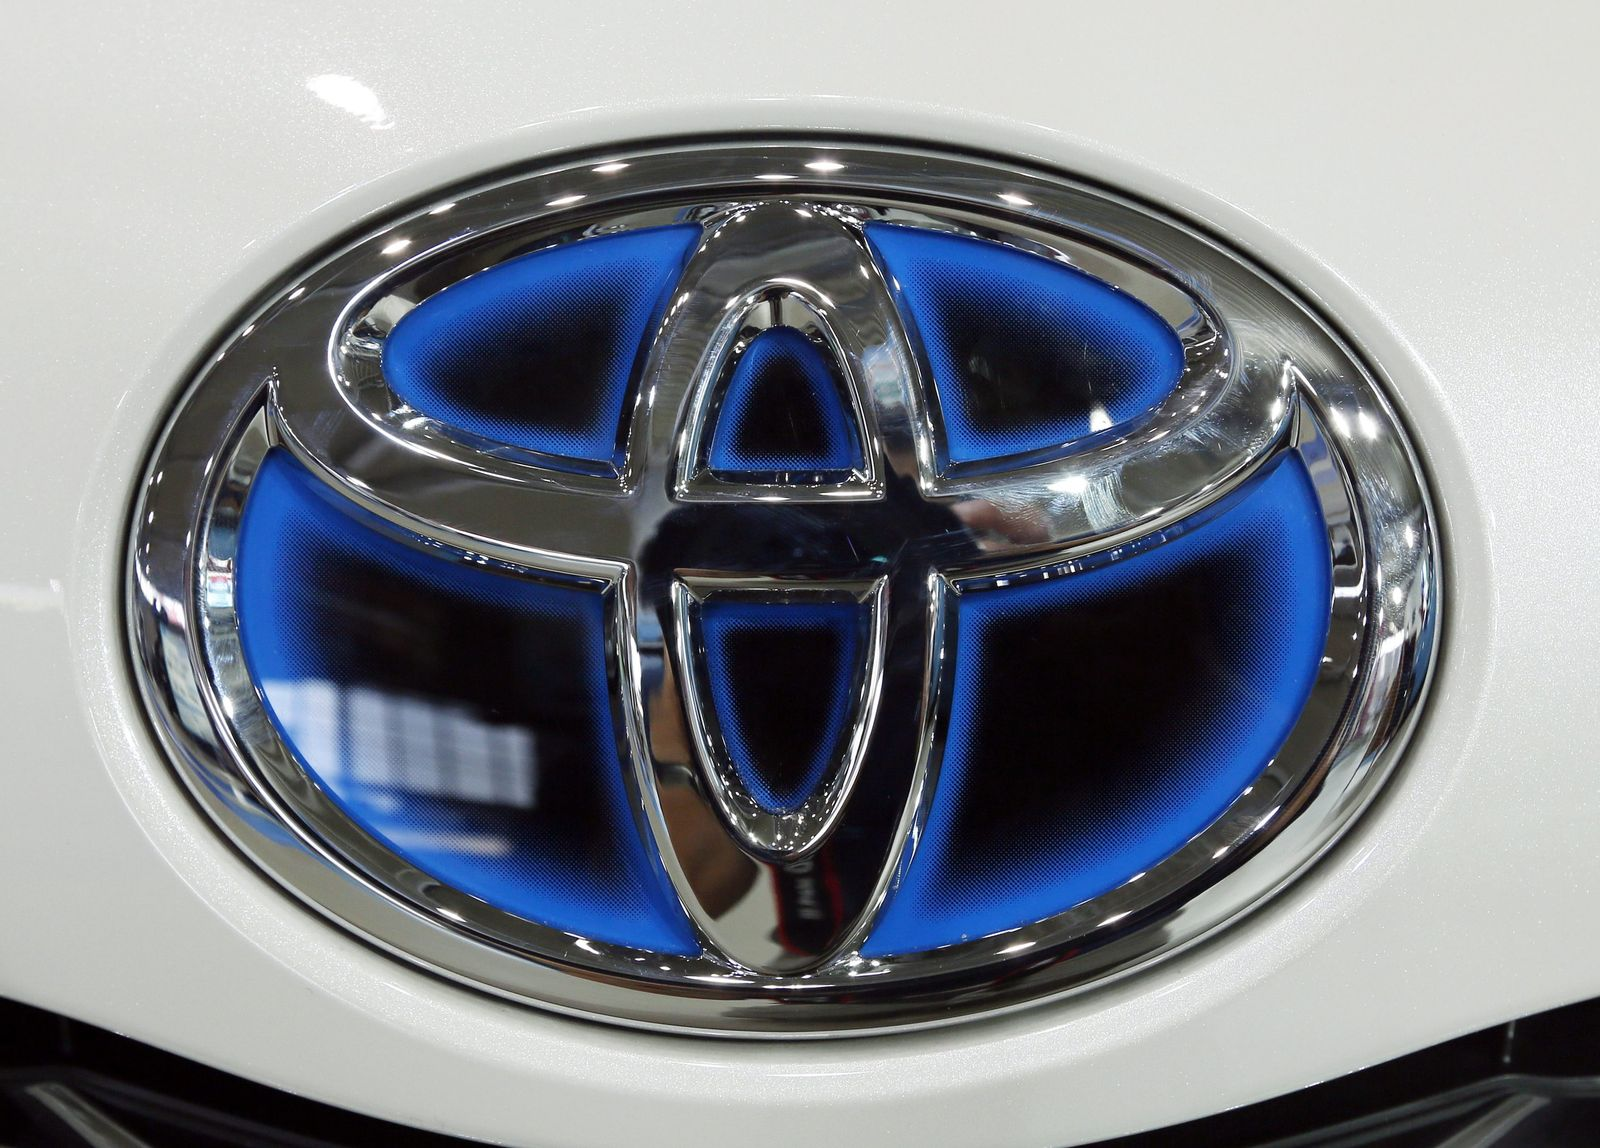 Toyota sold 4.97 million vehicles worldwide in the first half of